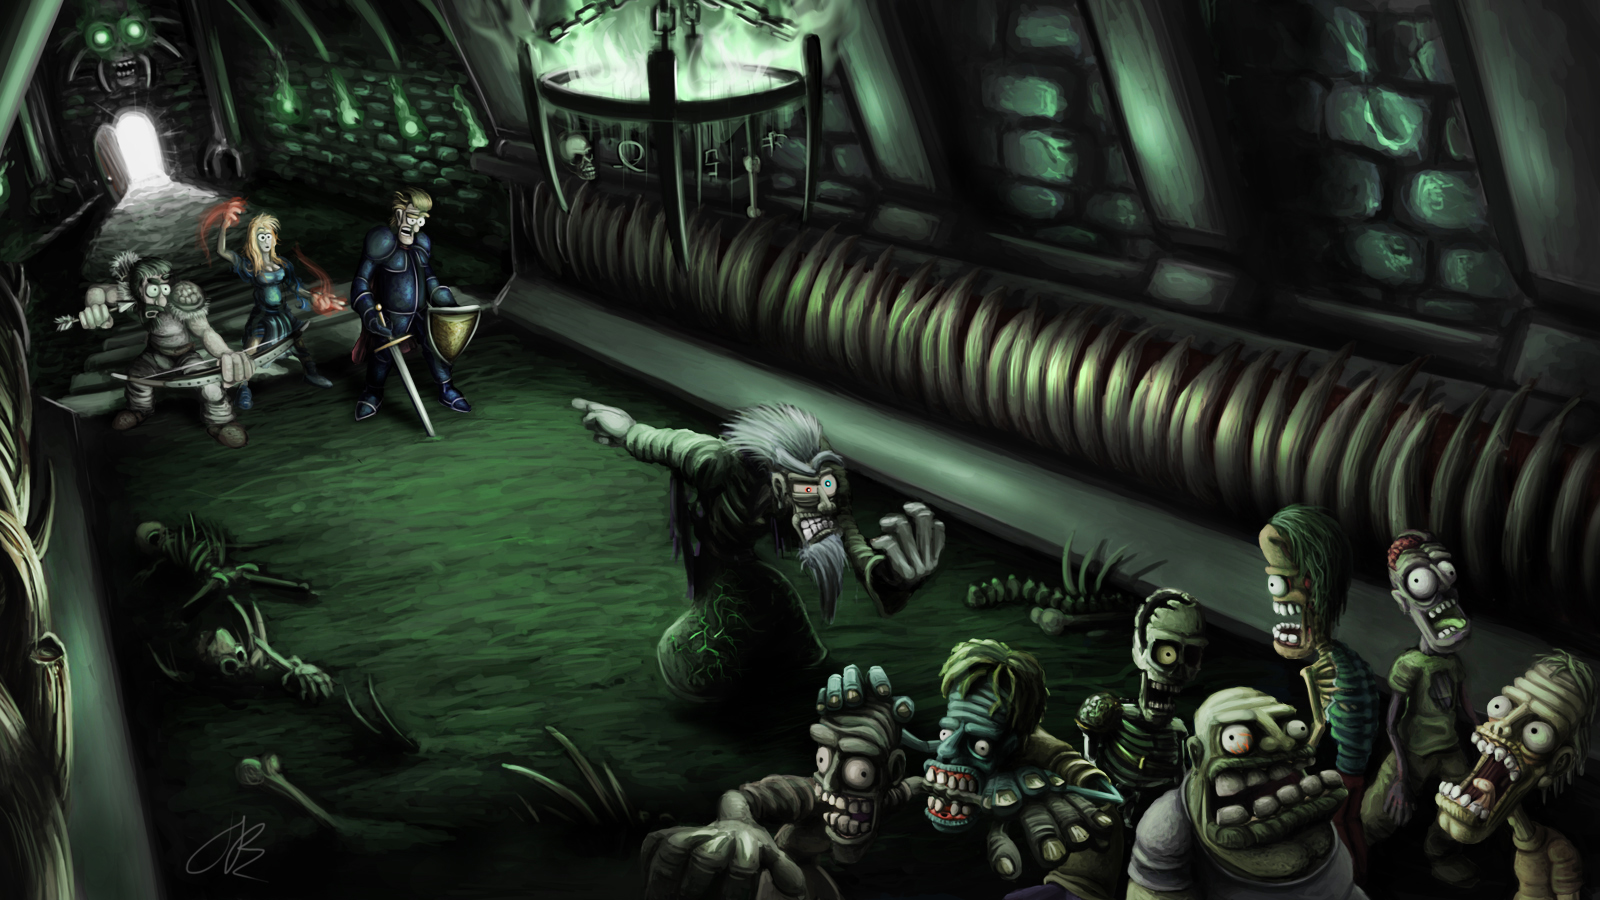 Assault on the Necromancer by Jamdeski